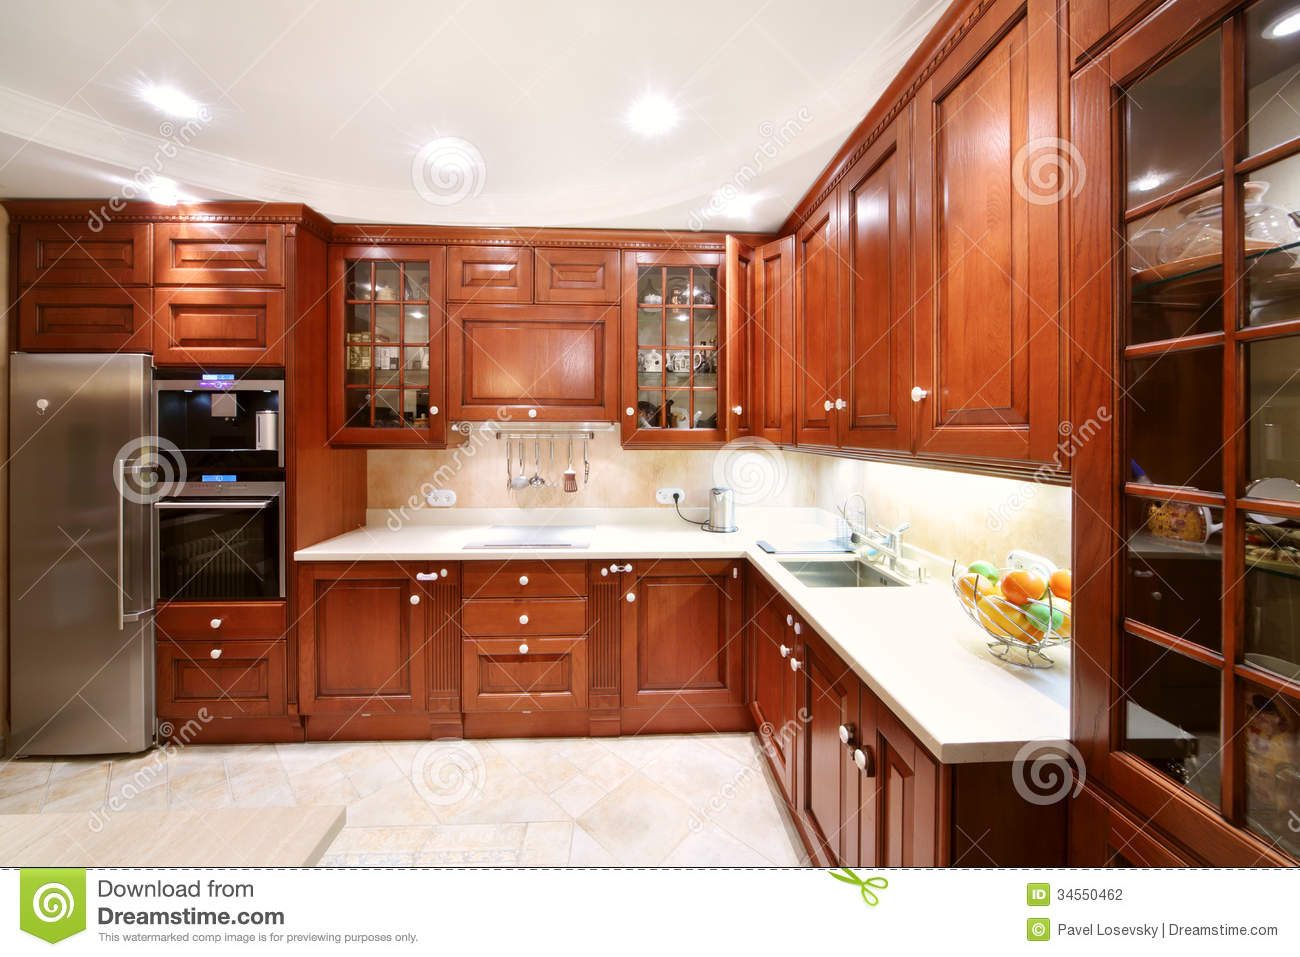 style melamine paint before cupboards even cupboard painting and kitchen cupboardseven